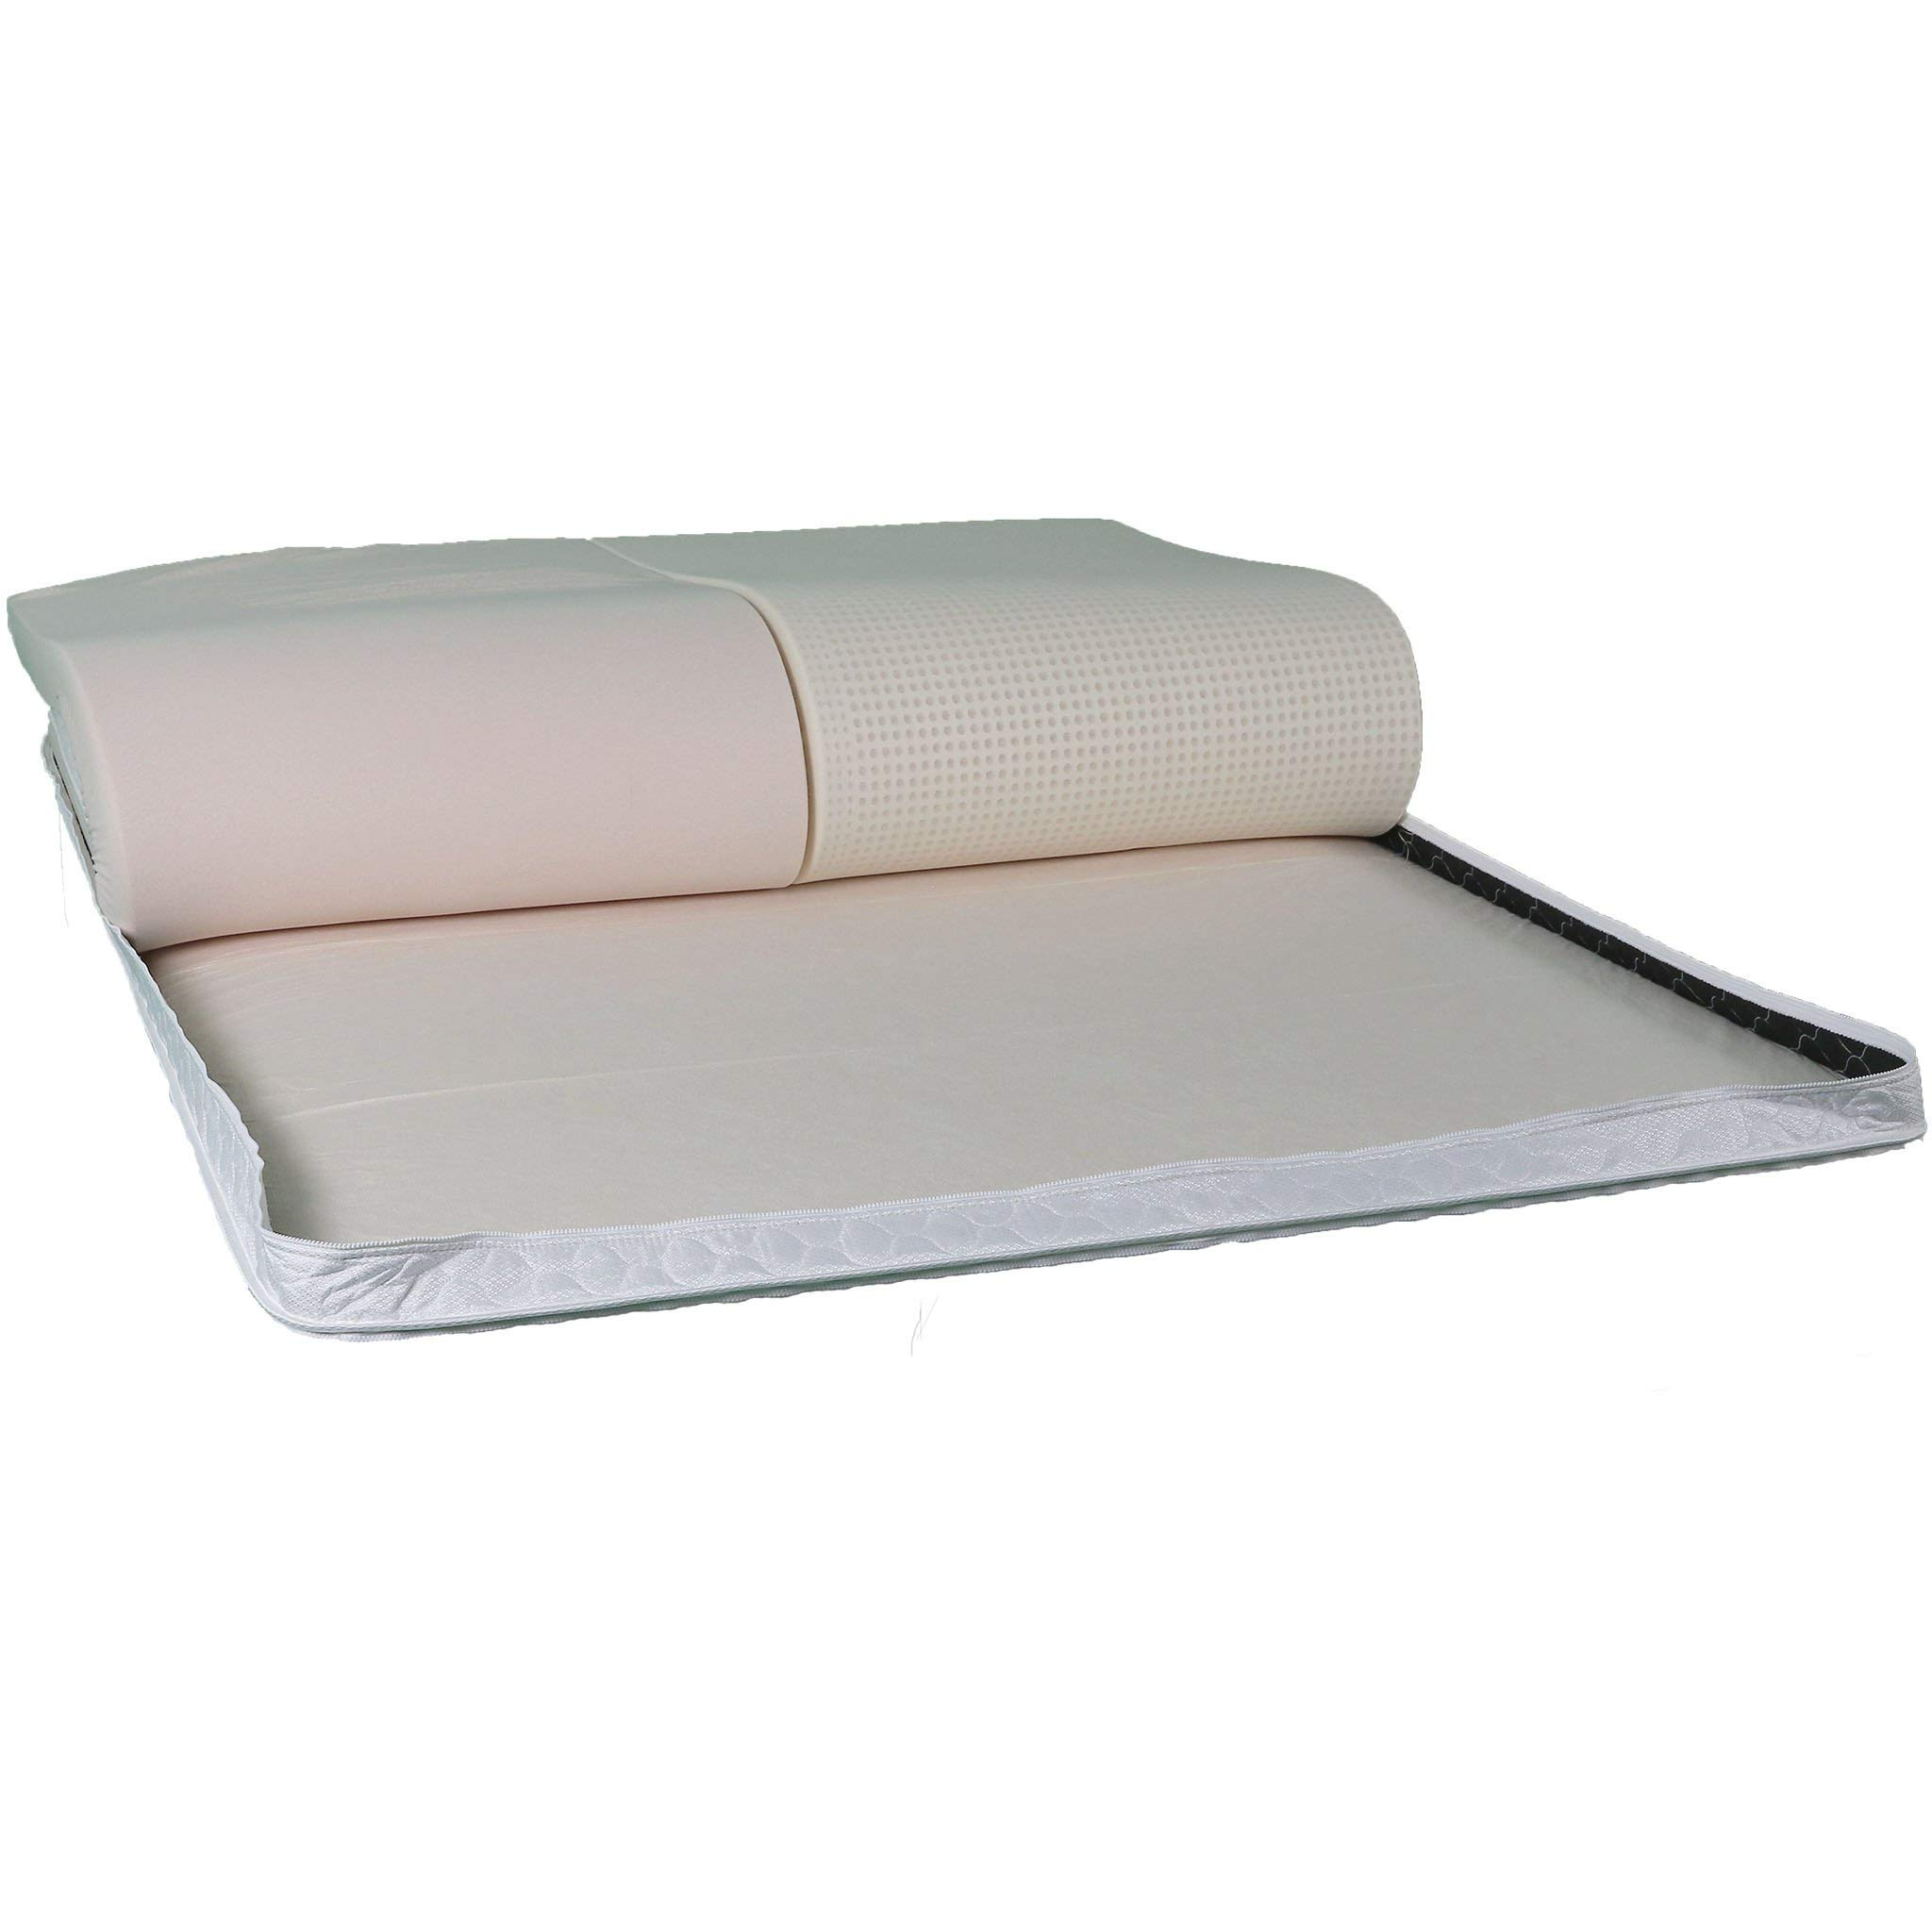 Euro Gusset for Softside Waterbeds Twin 38in x 75in by Sterling Sleep System